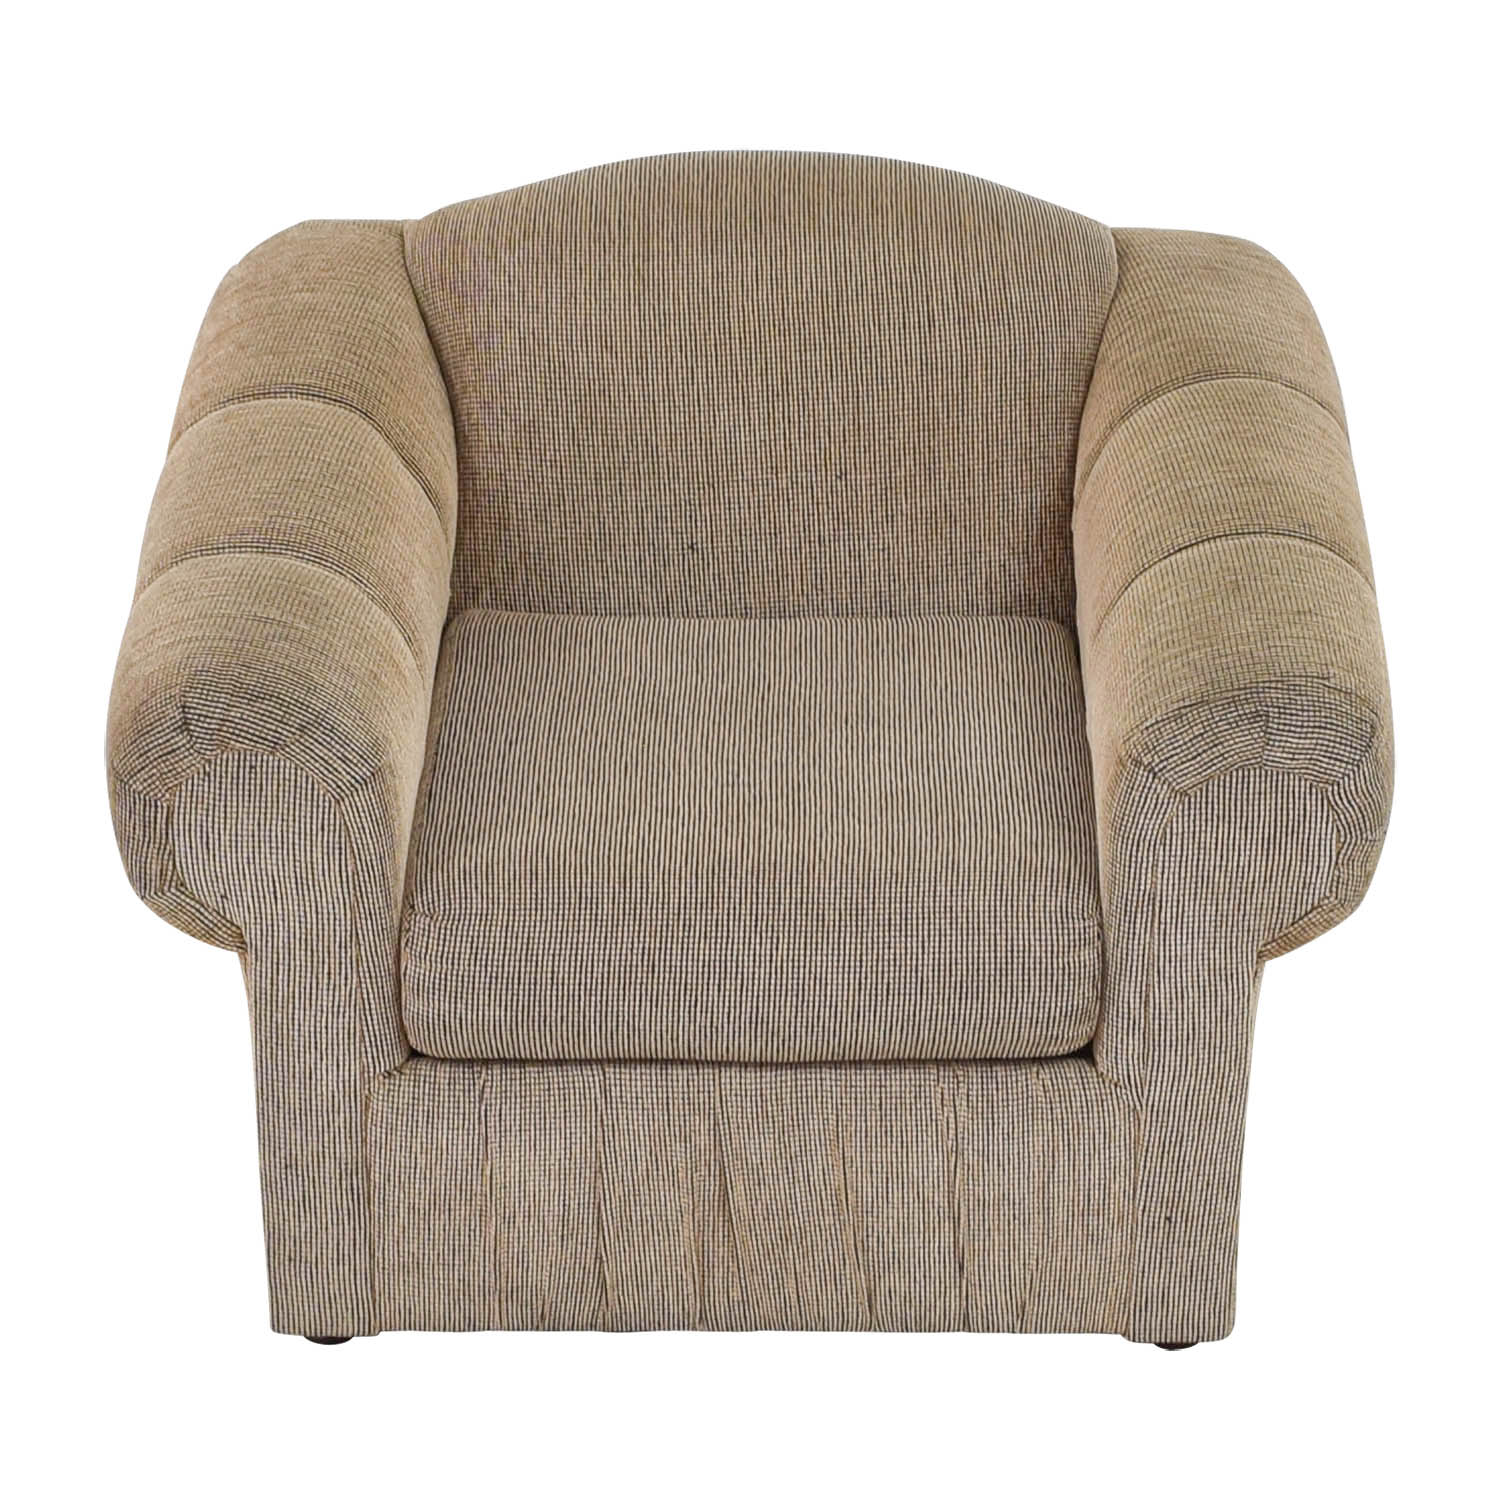 Tan Rolled Arm Accent Chair